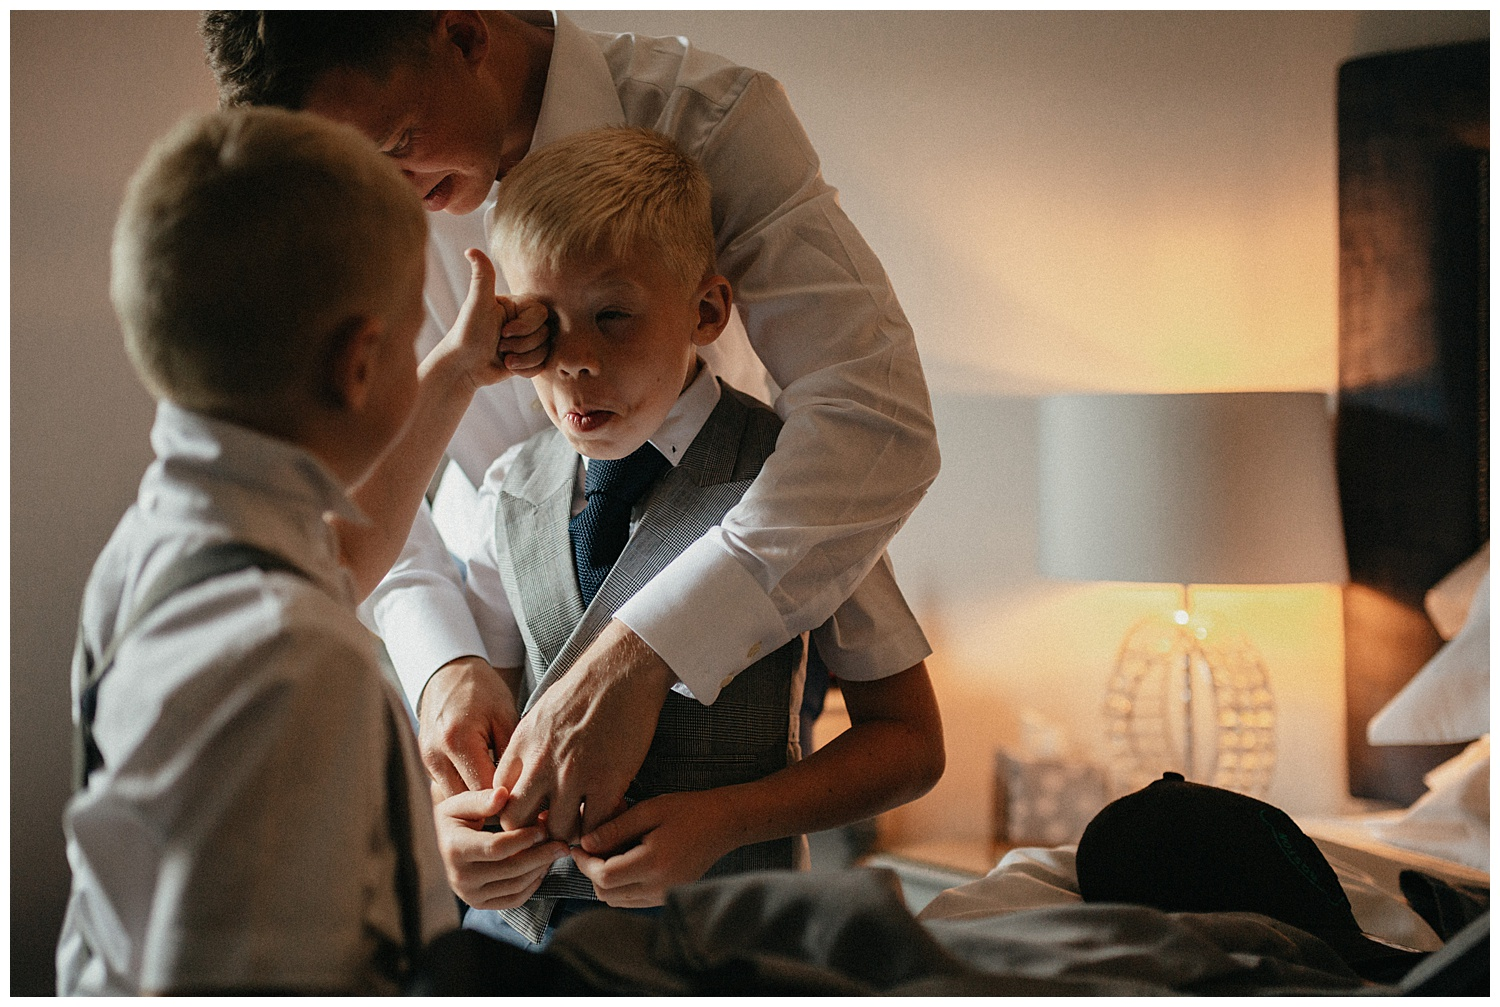 Weddings-at-Crondon-Park-the-kids-play-around-while-getting-ready